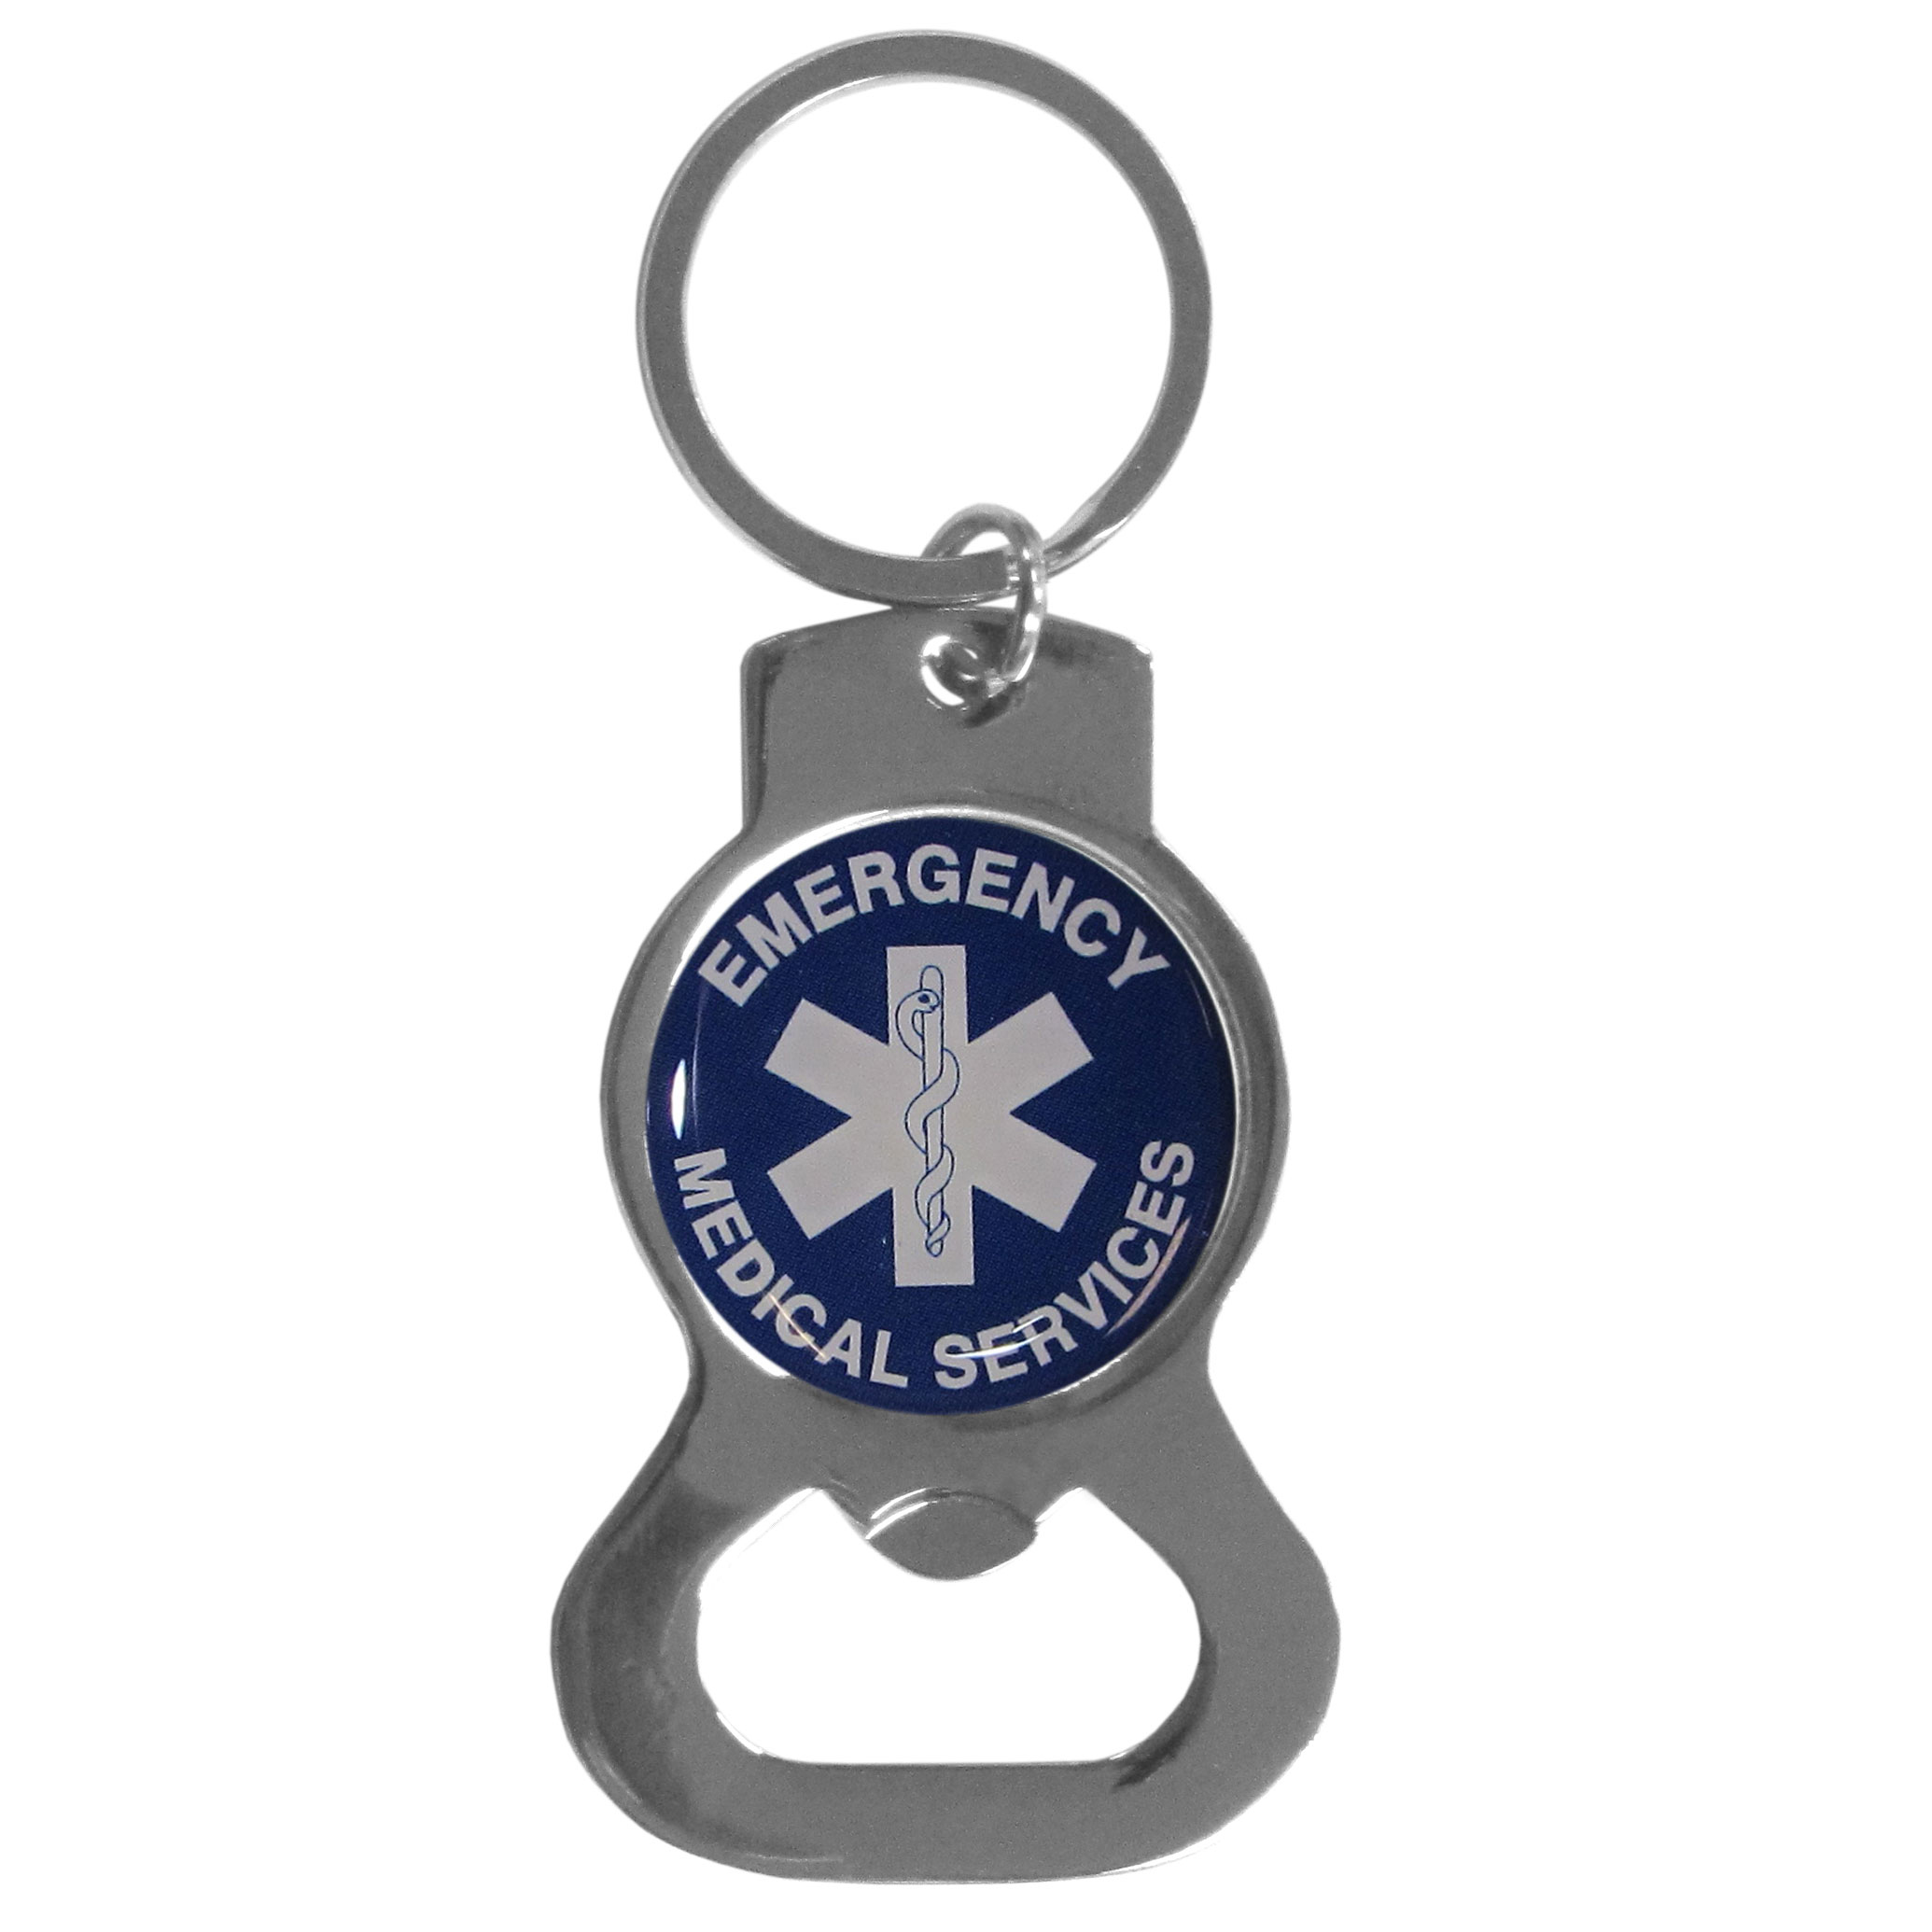 EMS Bottle Opener Key Chain - Hate searching for a bottle opener, get our EMS bottle opener key chain and never have to search again! The high polish key chain features a bright domed emblem and a standard split ring for organizing your home and auto keys.